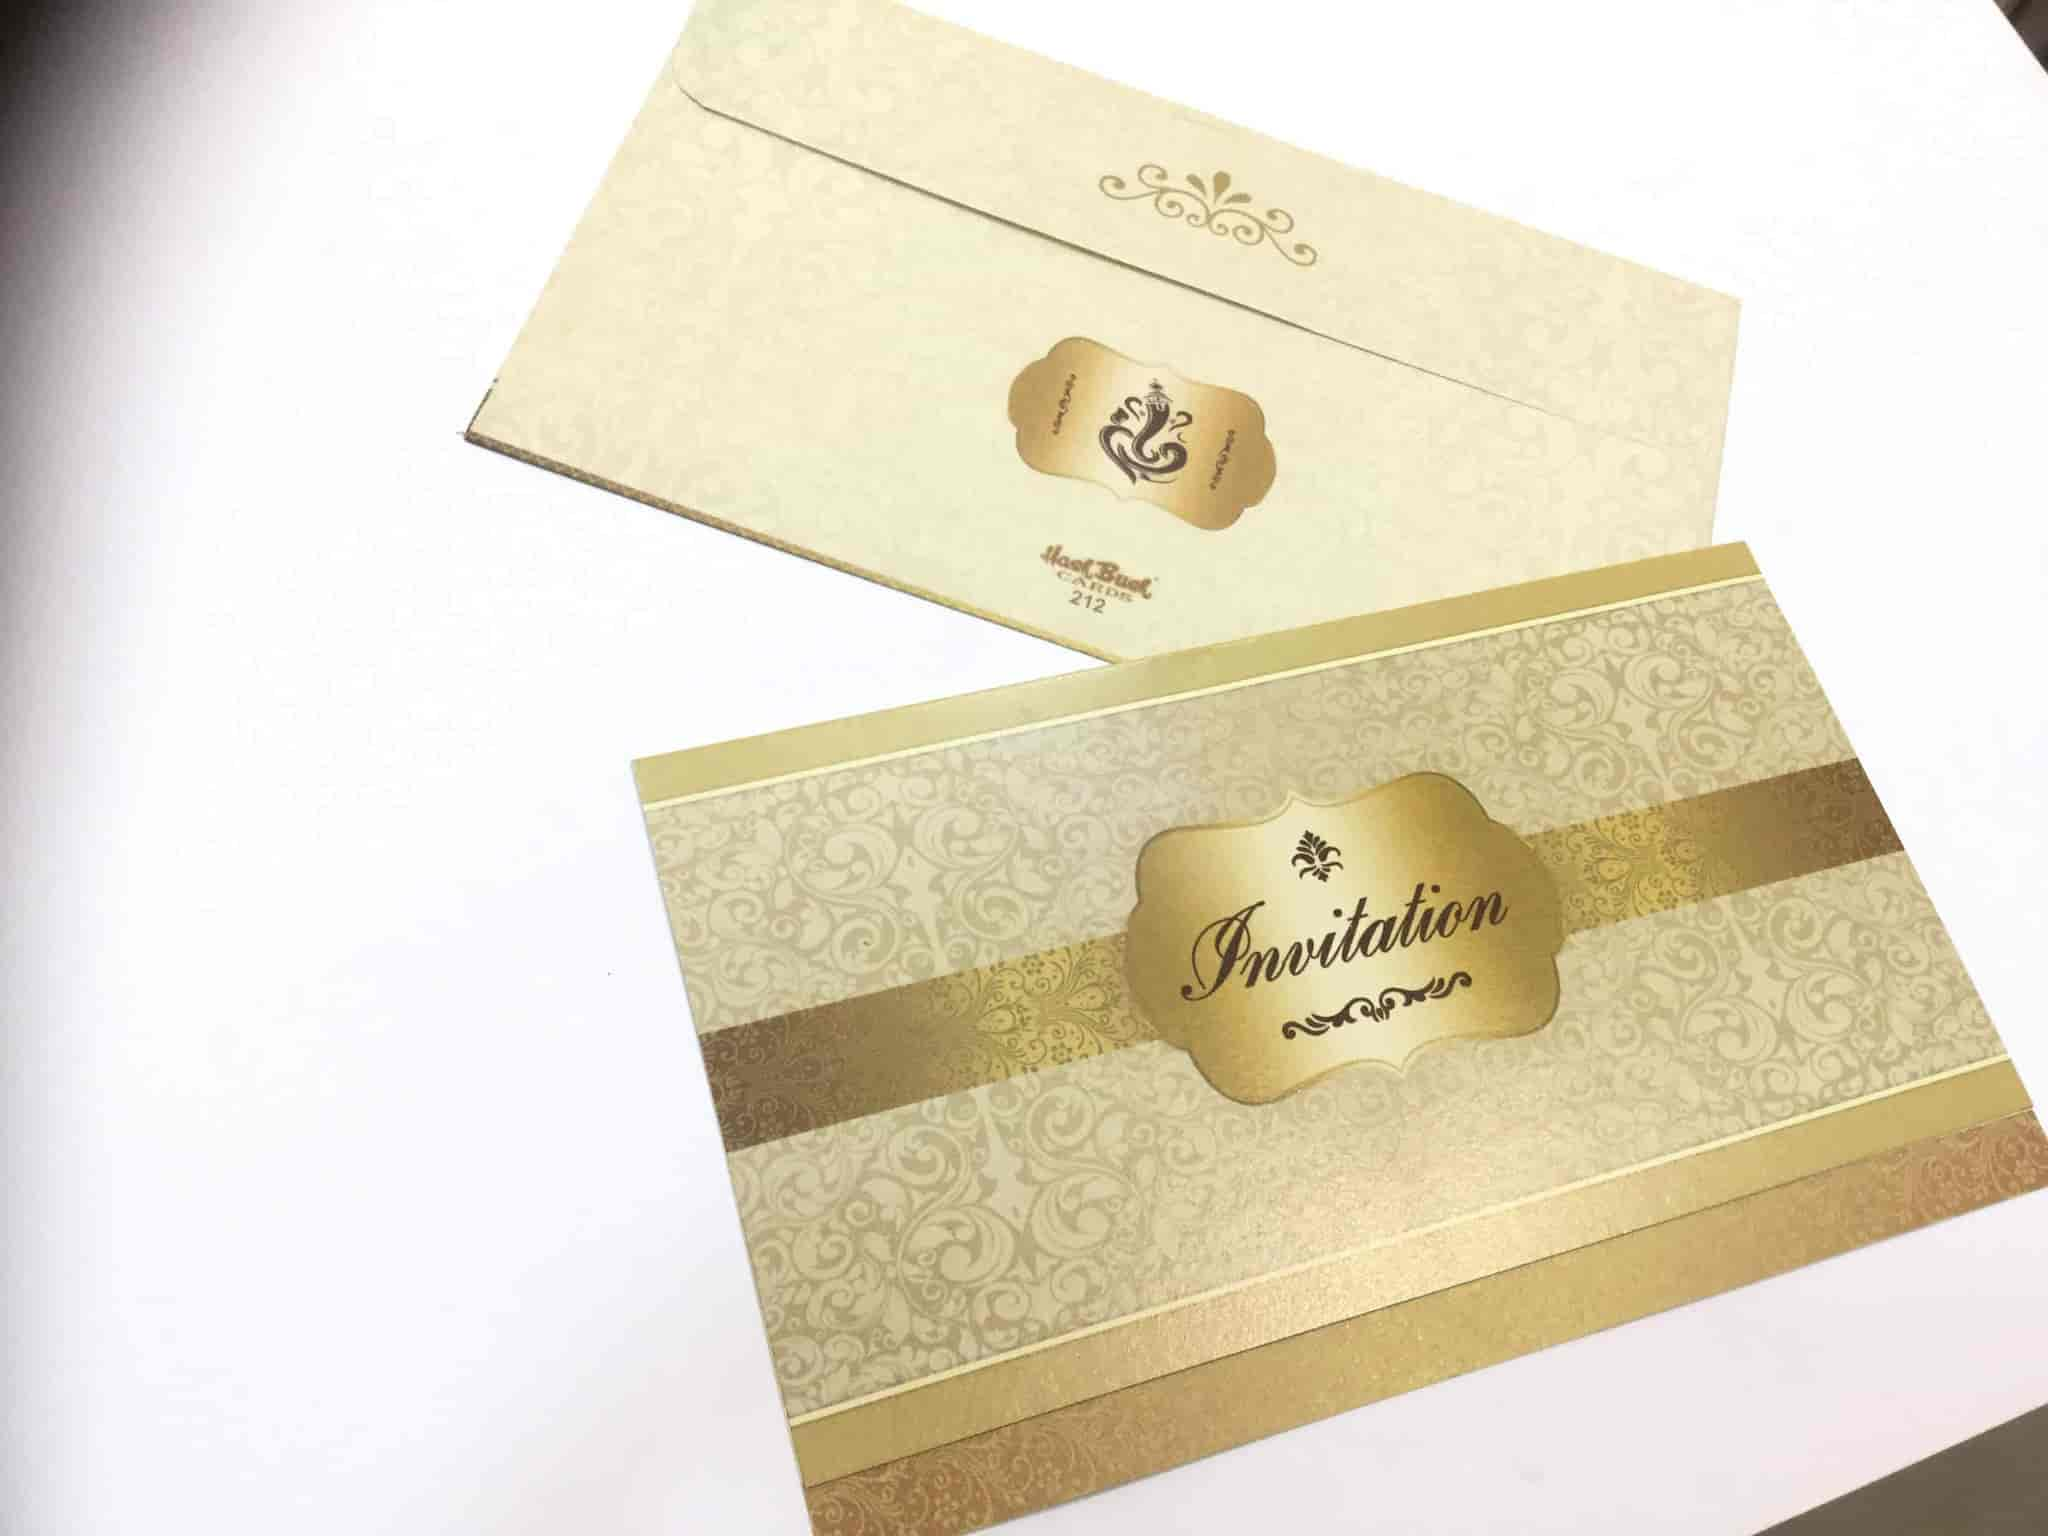 Hash Bush Wedding Cards Photos, South, Ernakulam- Pictures & Images ...